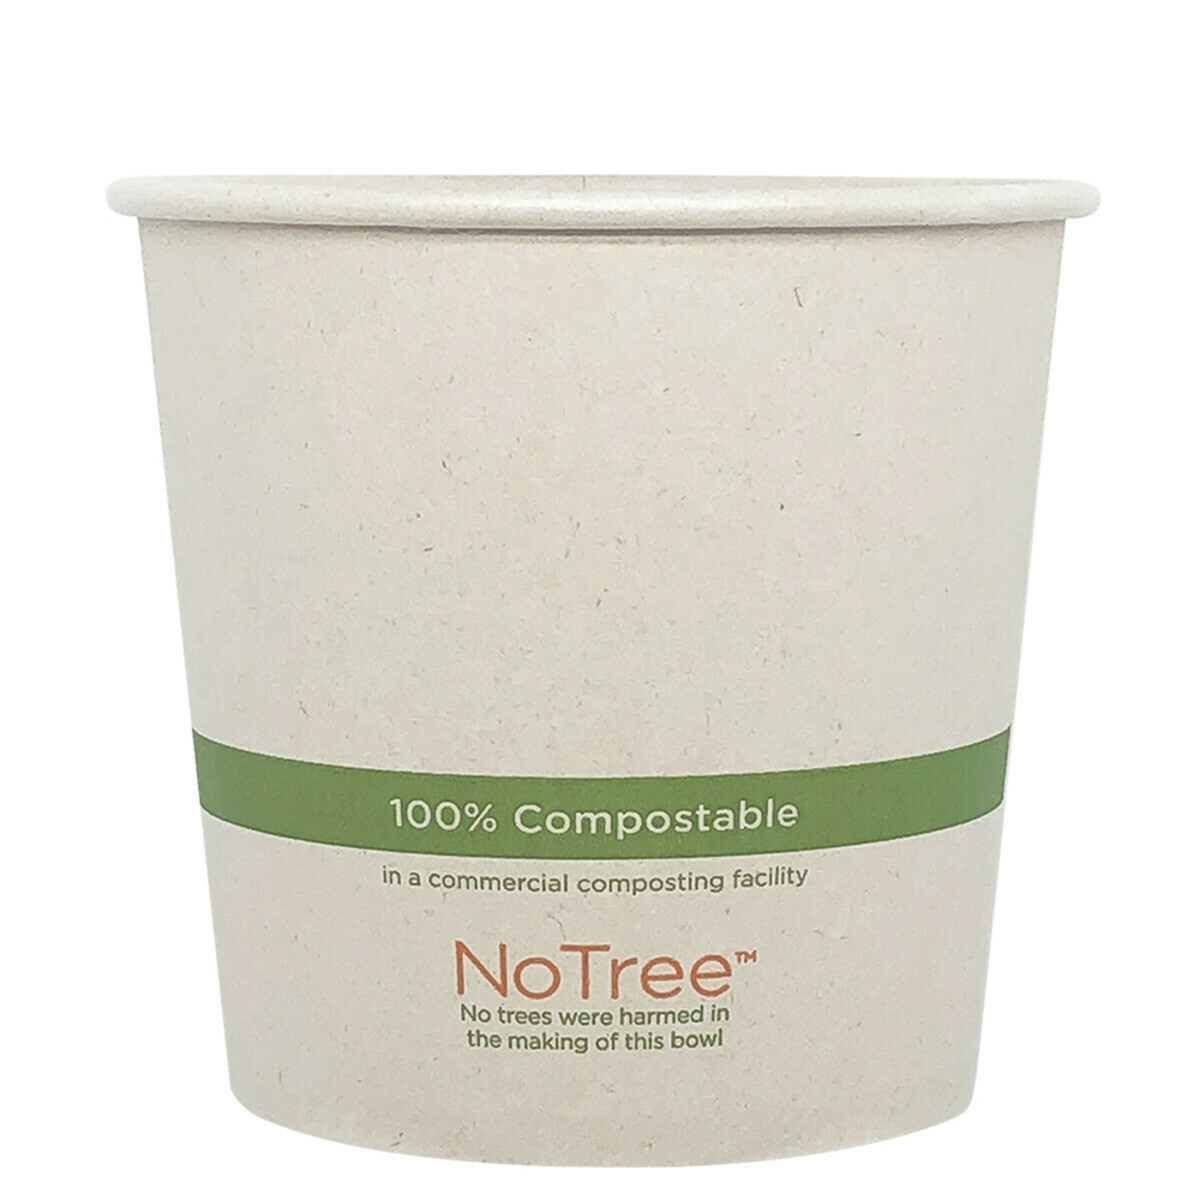 Case of 500 Units or Pack of 50 Units of Paper Bowl NoTree 24 oz